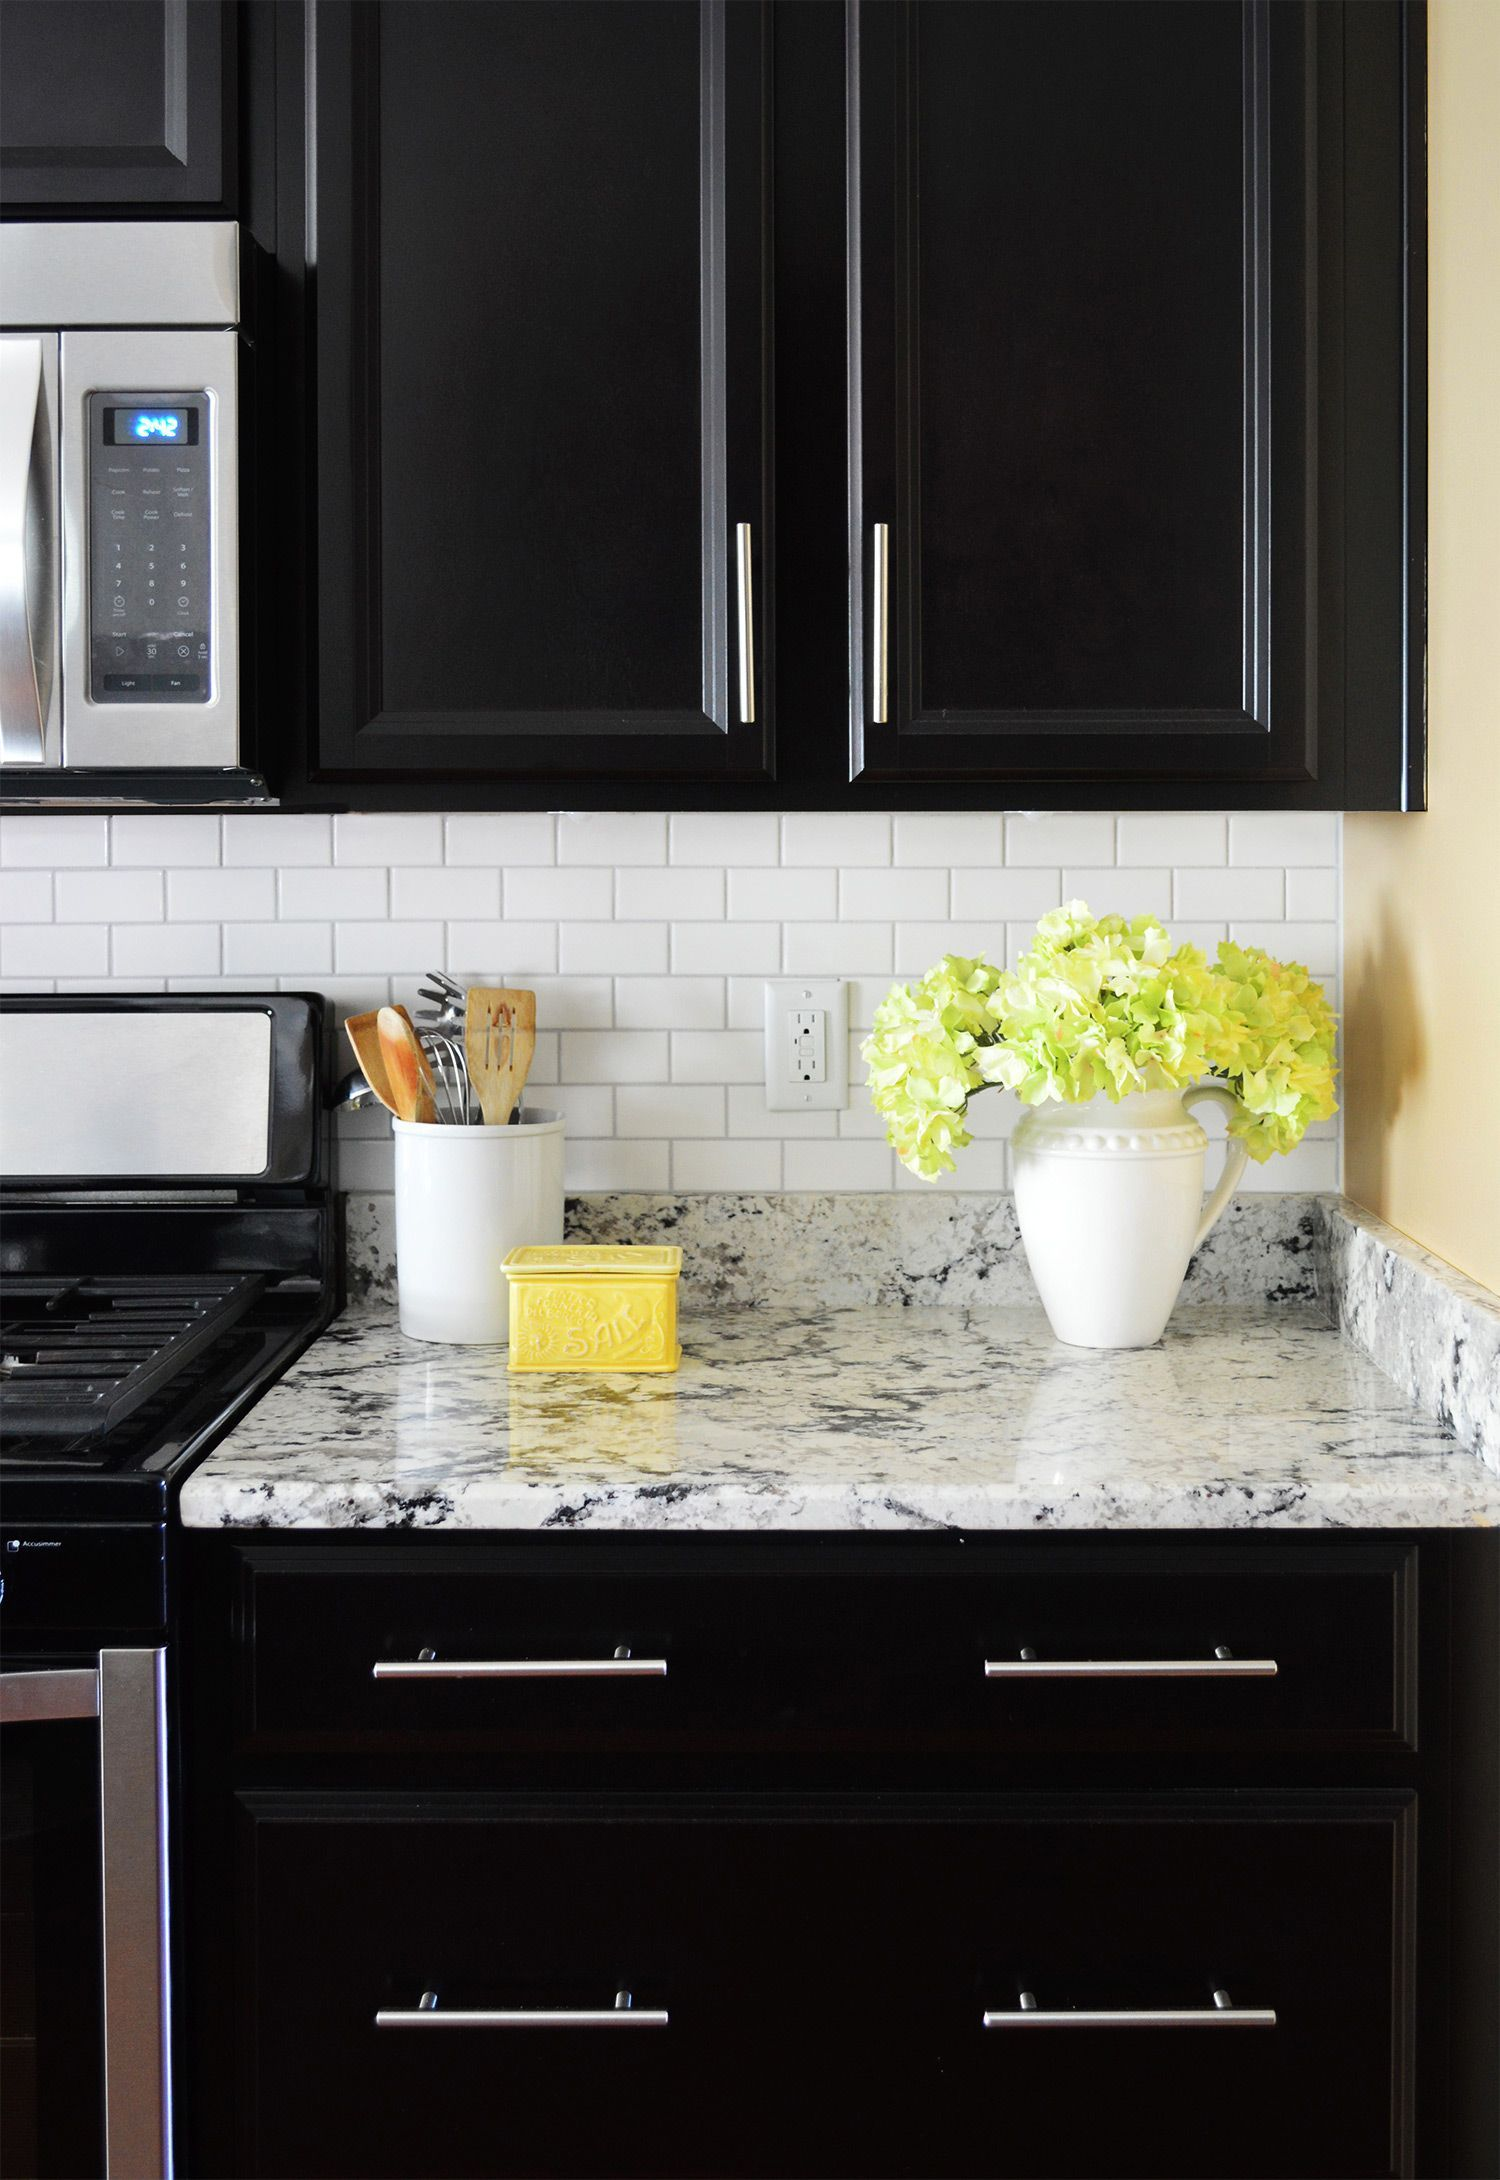 10 best ways to install new kitchen backsplash easy tips on simple effective and easy diy shelves decorations ideas the way of appearance of any space id=98874